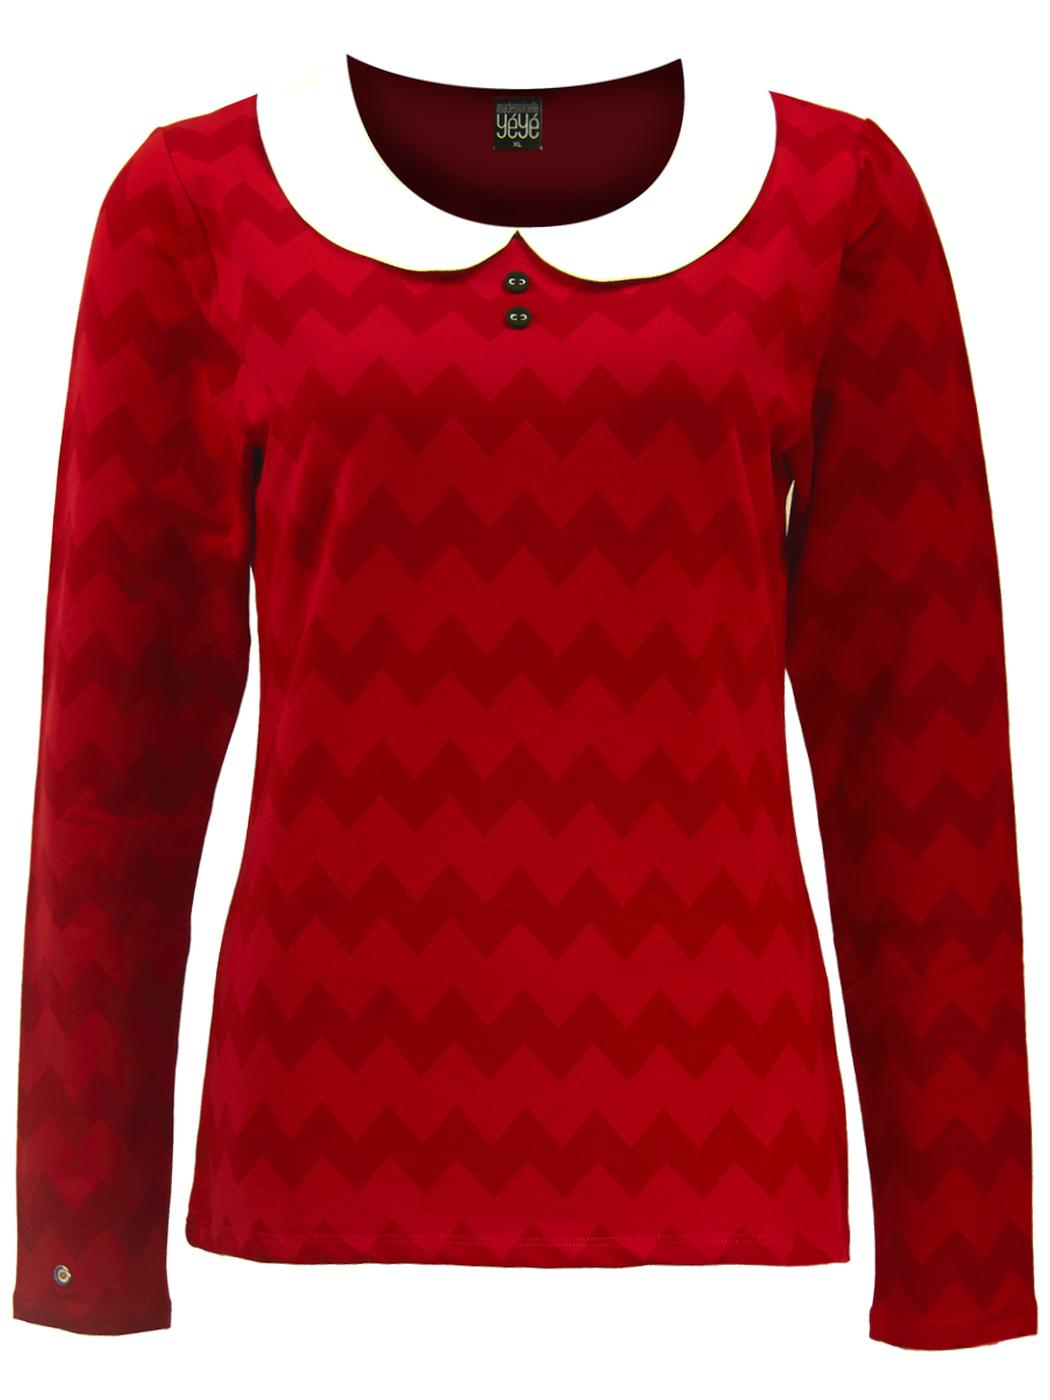 Raspberry Pie MADEMOISELLE YEYE Retro Mod Top (R)